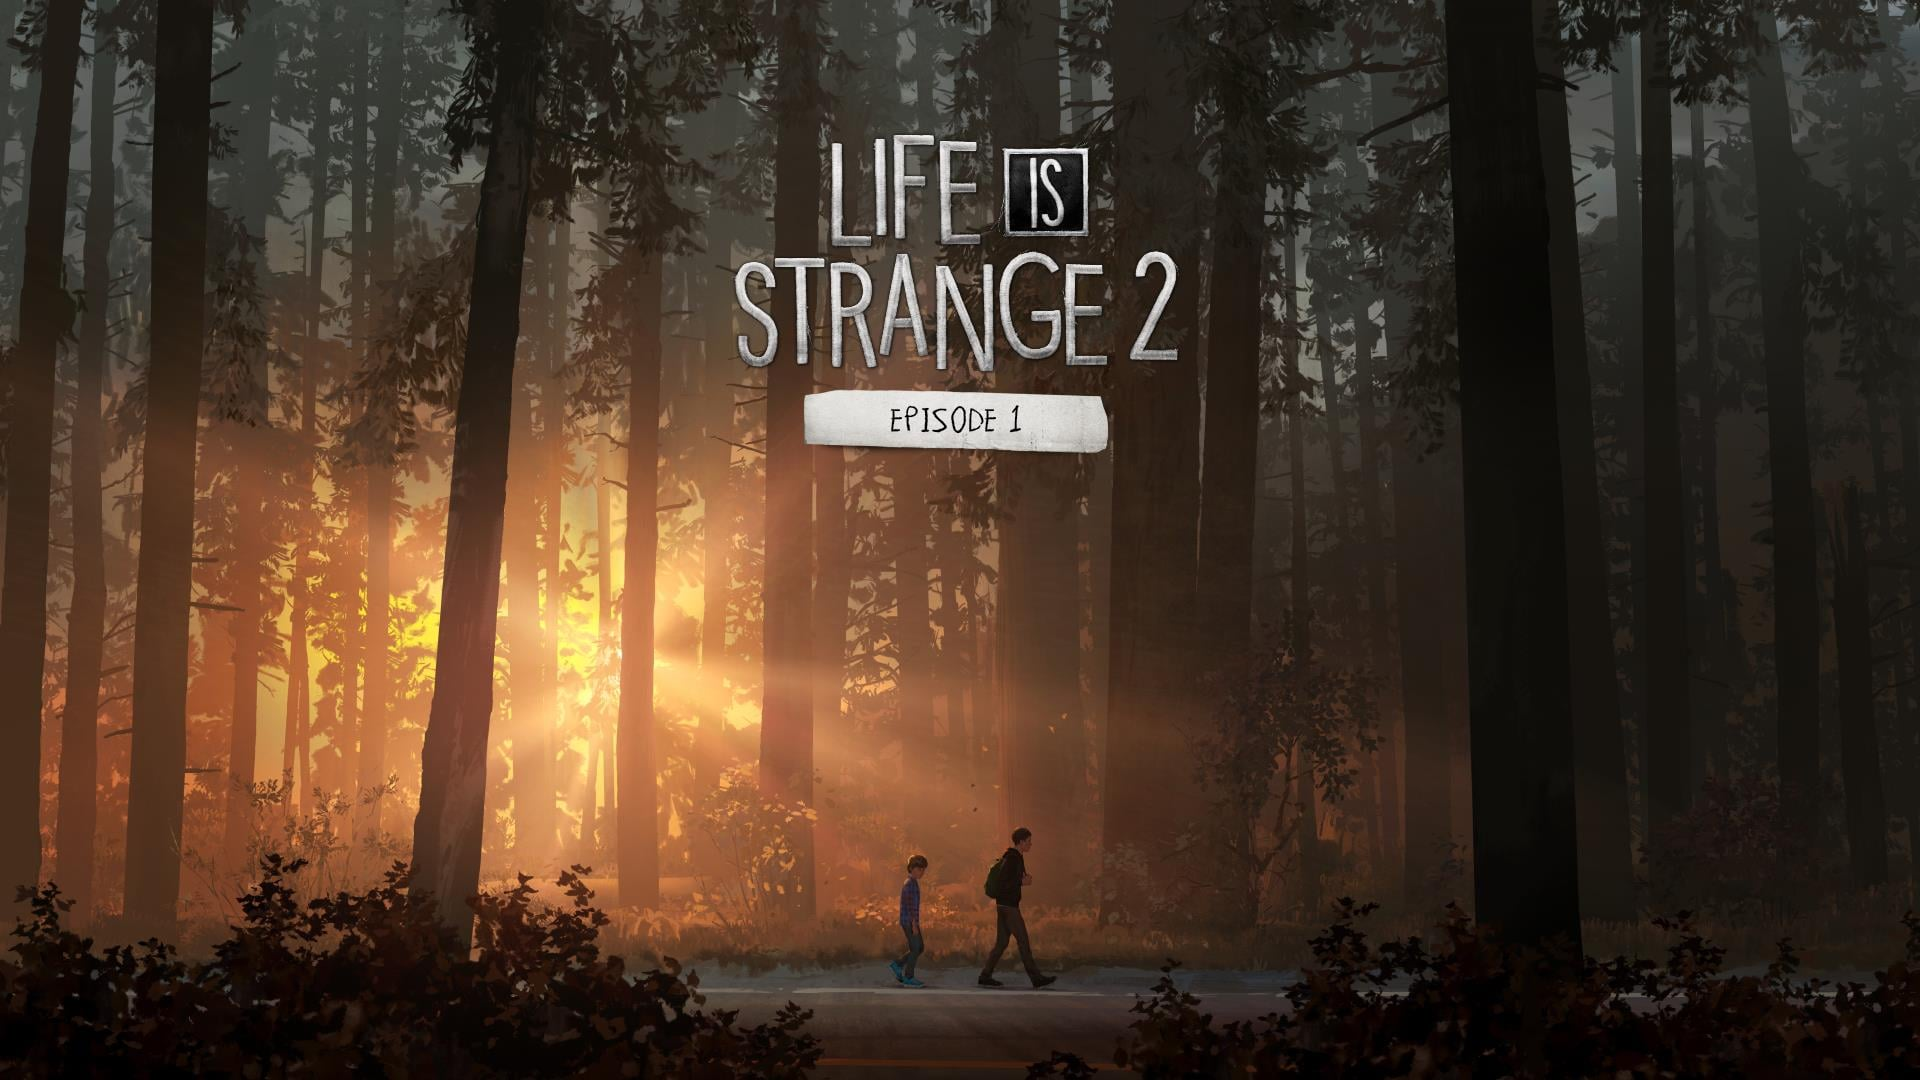 Life Is Strange 2 Episode 1 : Roads (on the road again!)